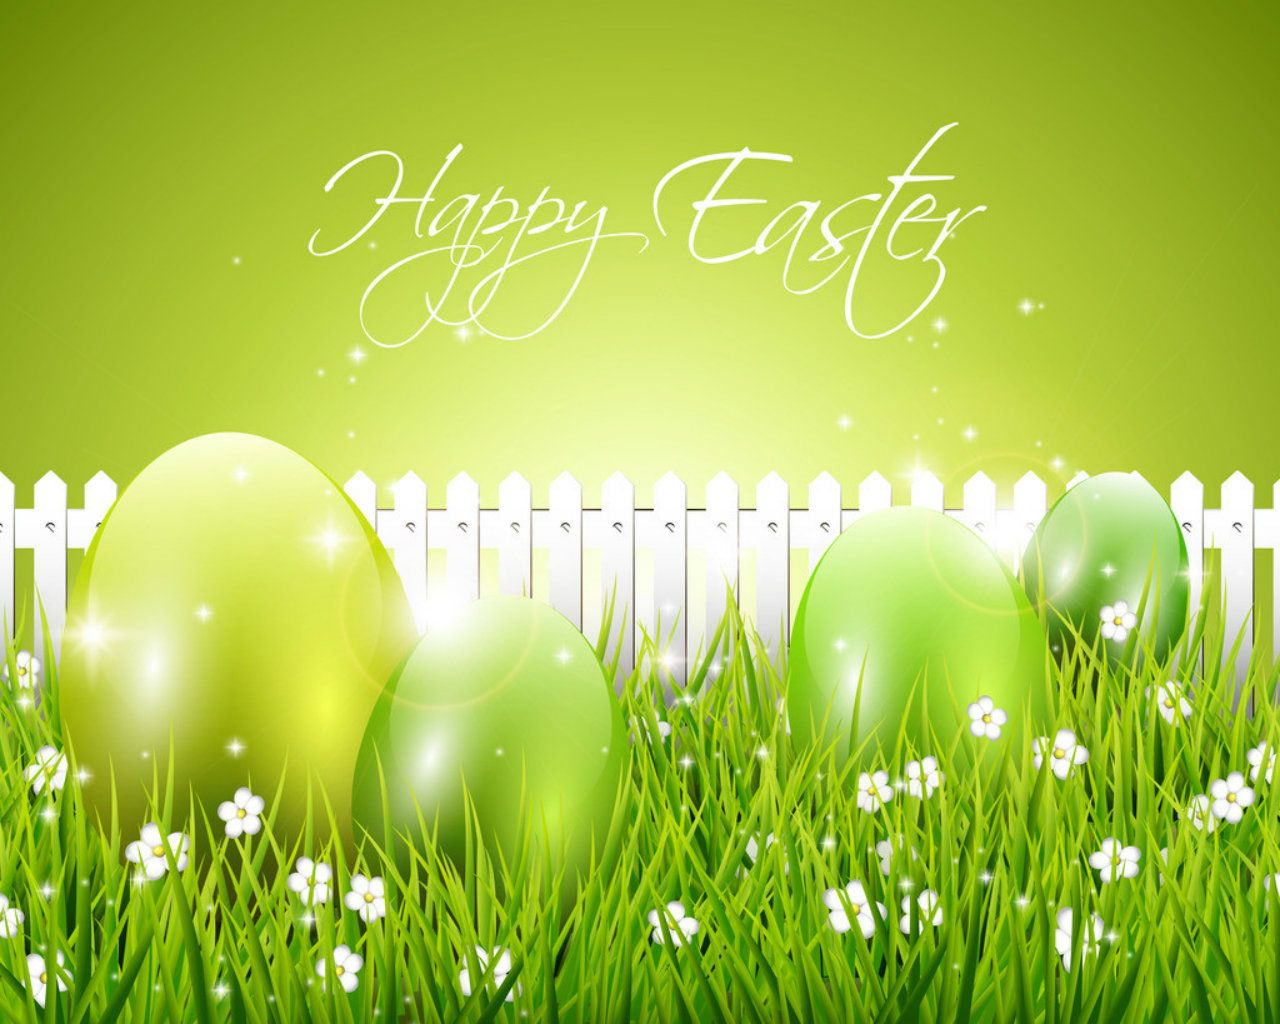 Happy Easter Images   Google Search